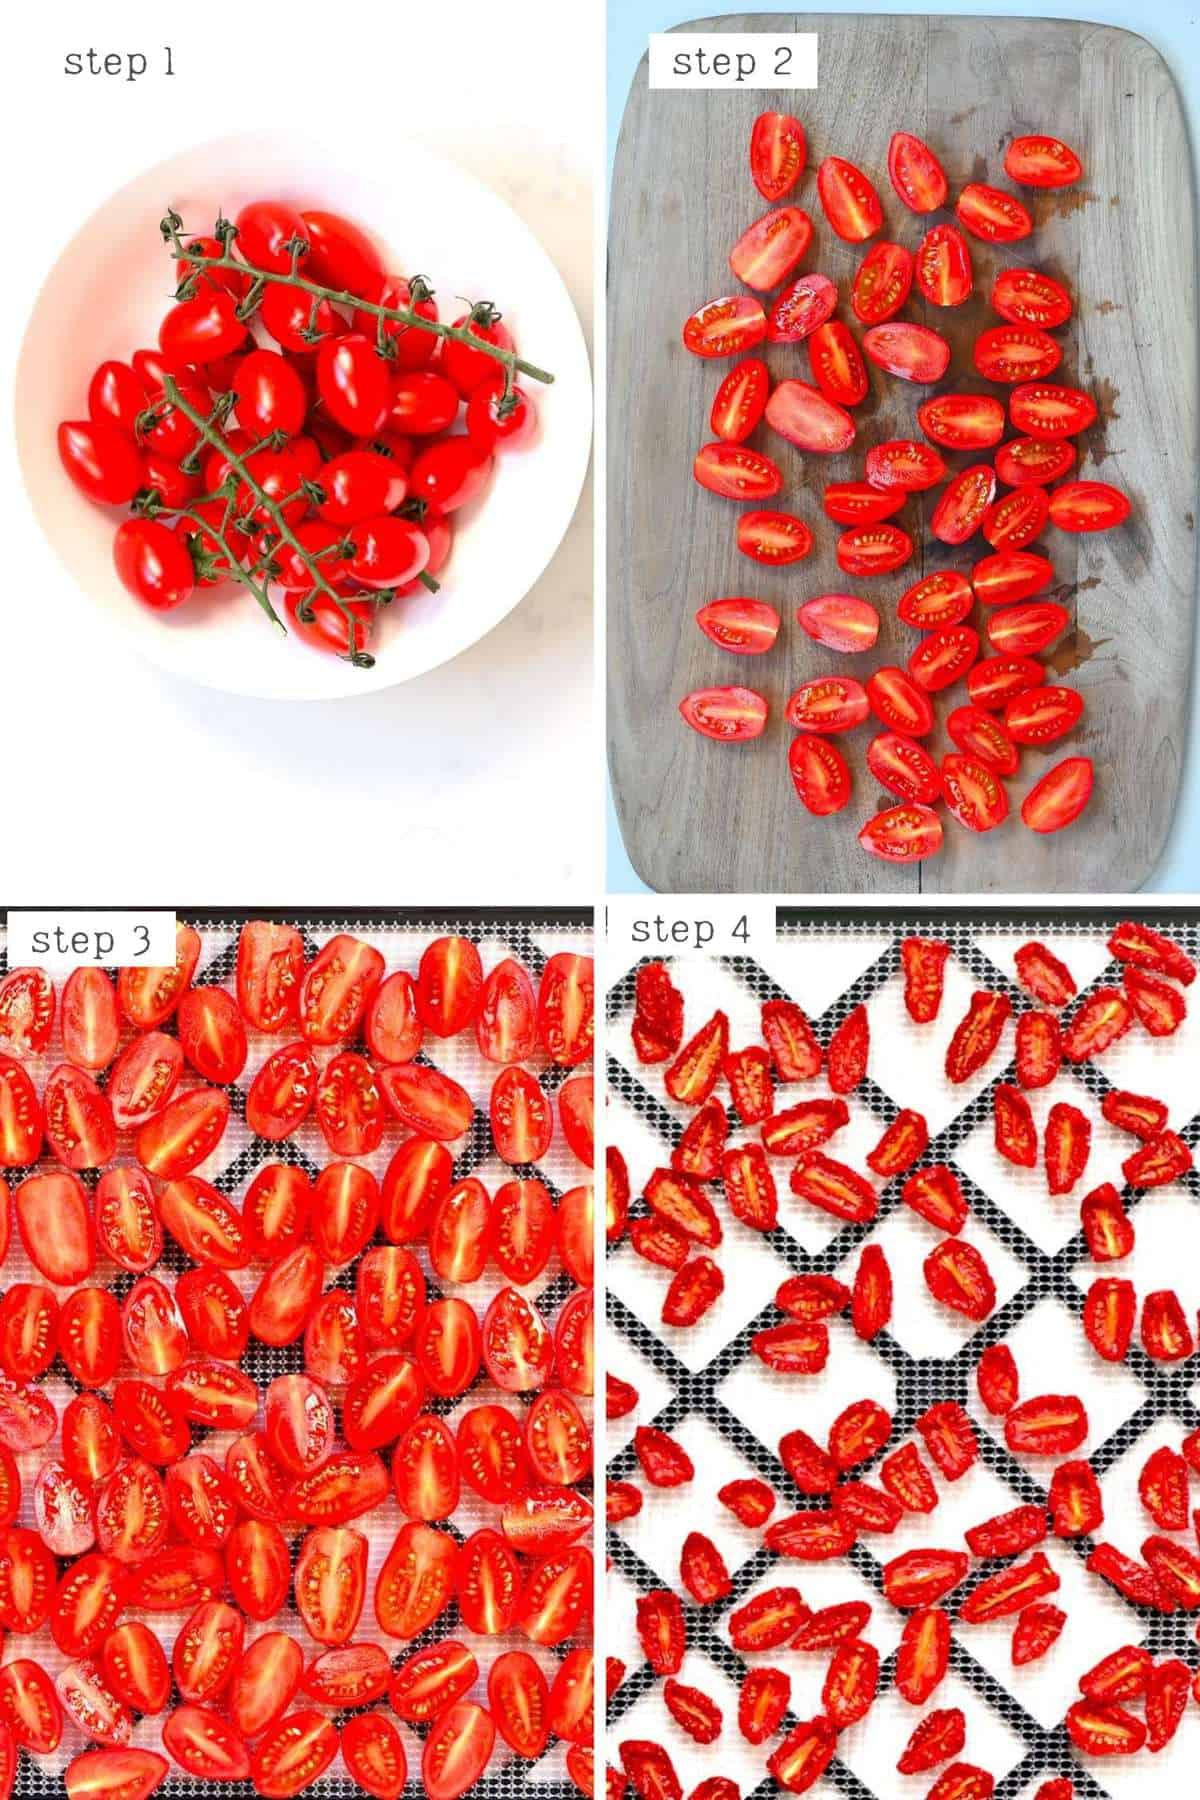 steps for making sun dried tomatoes